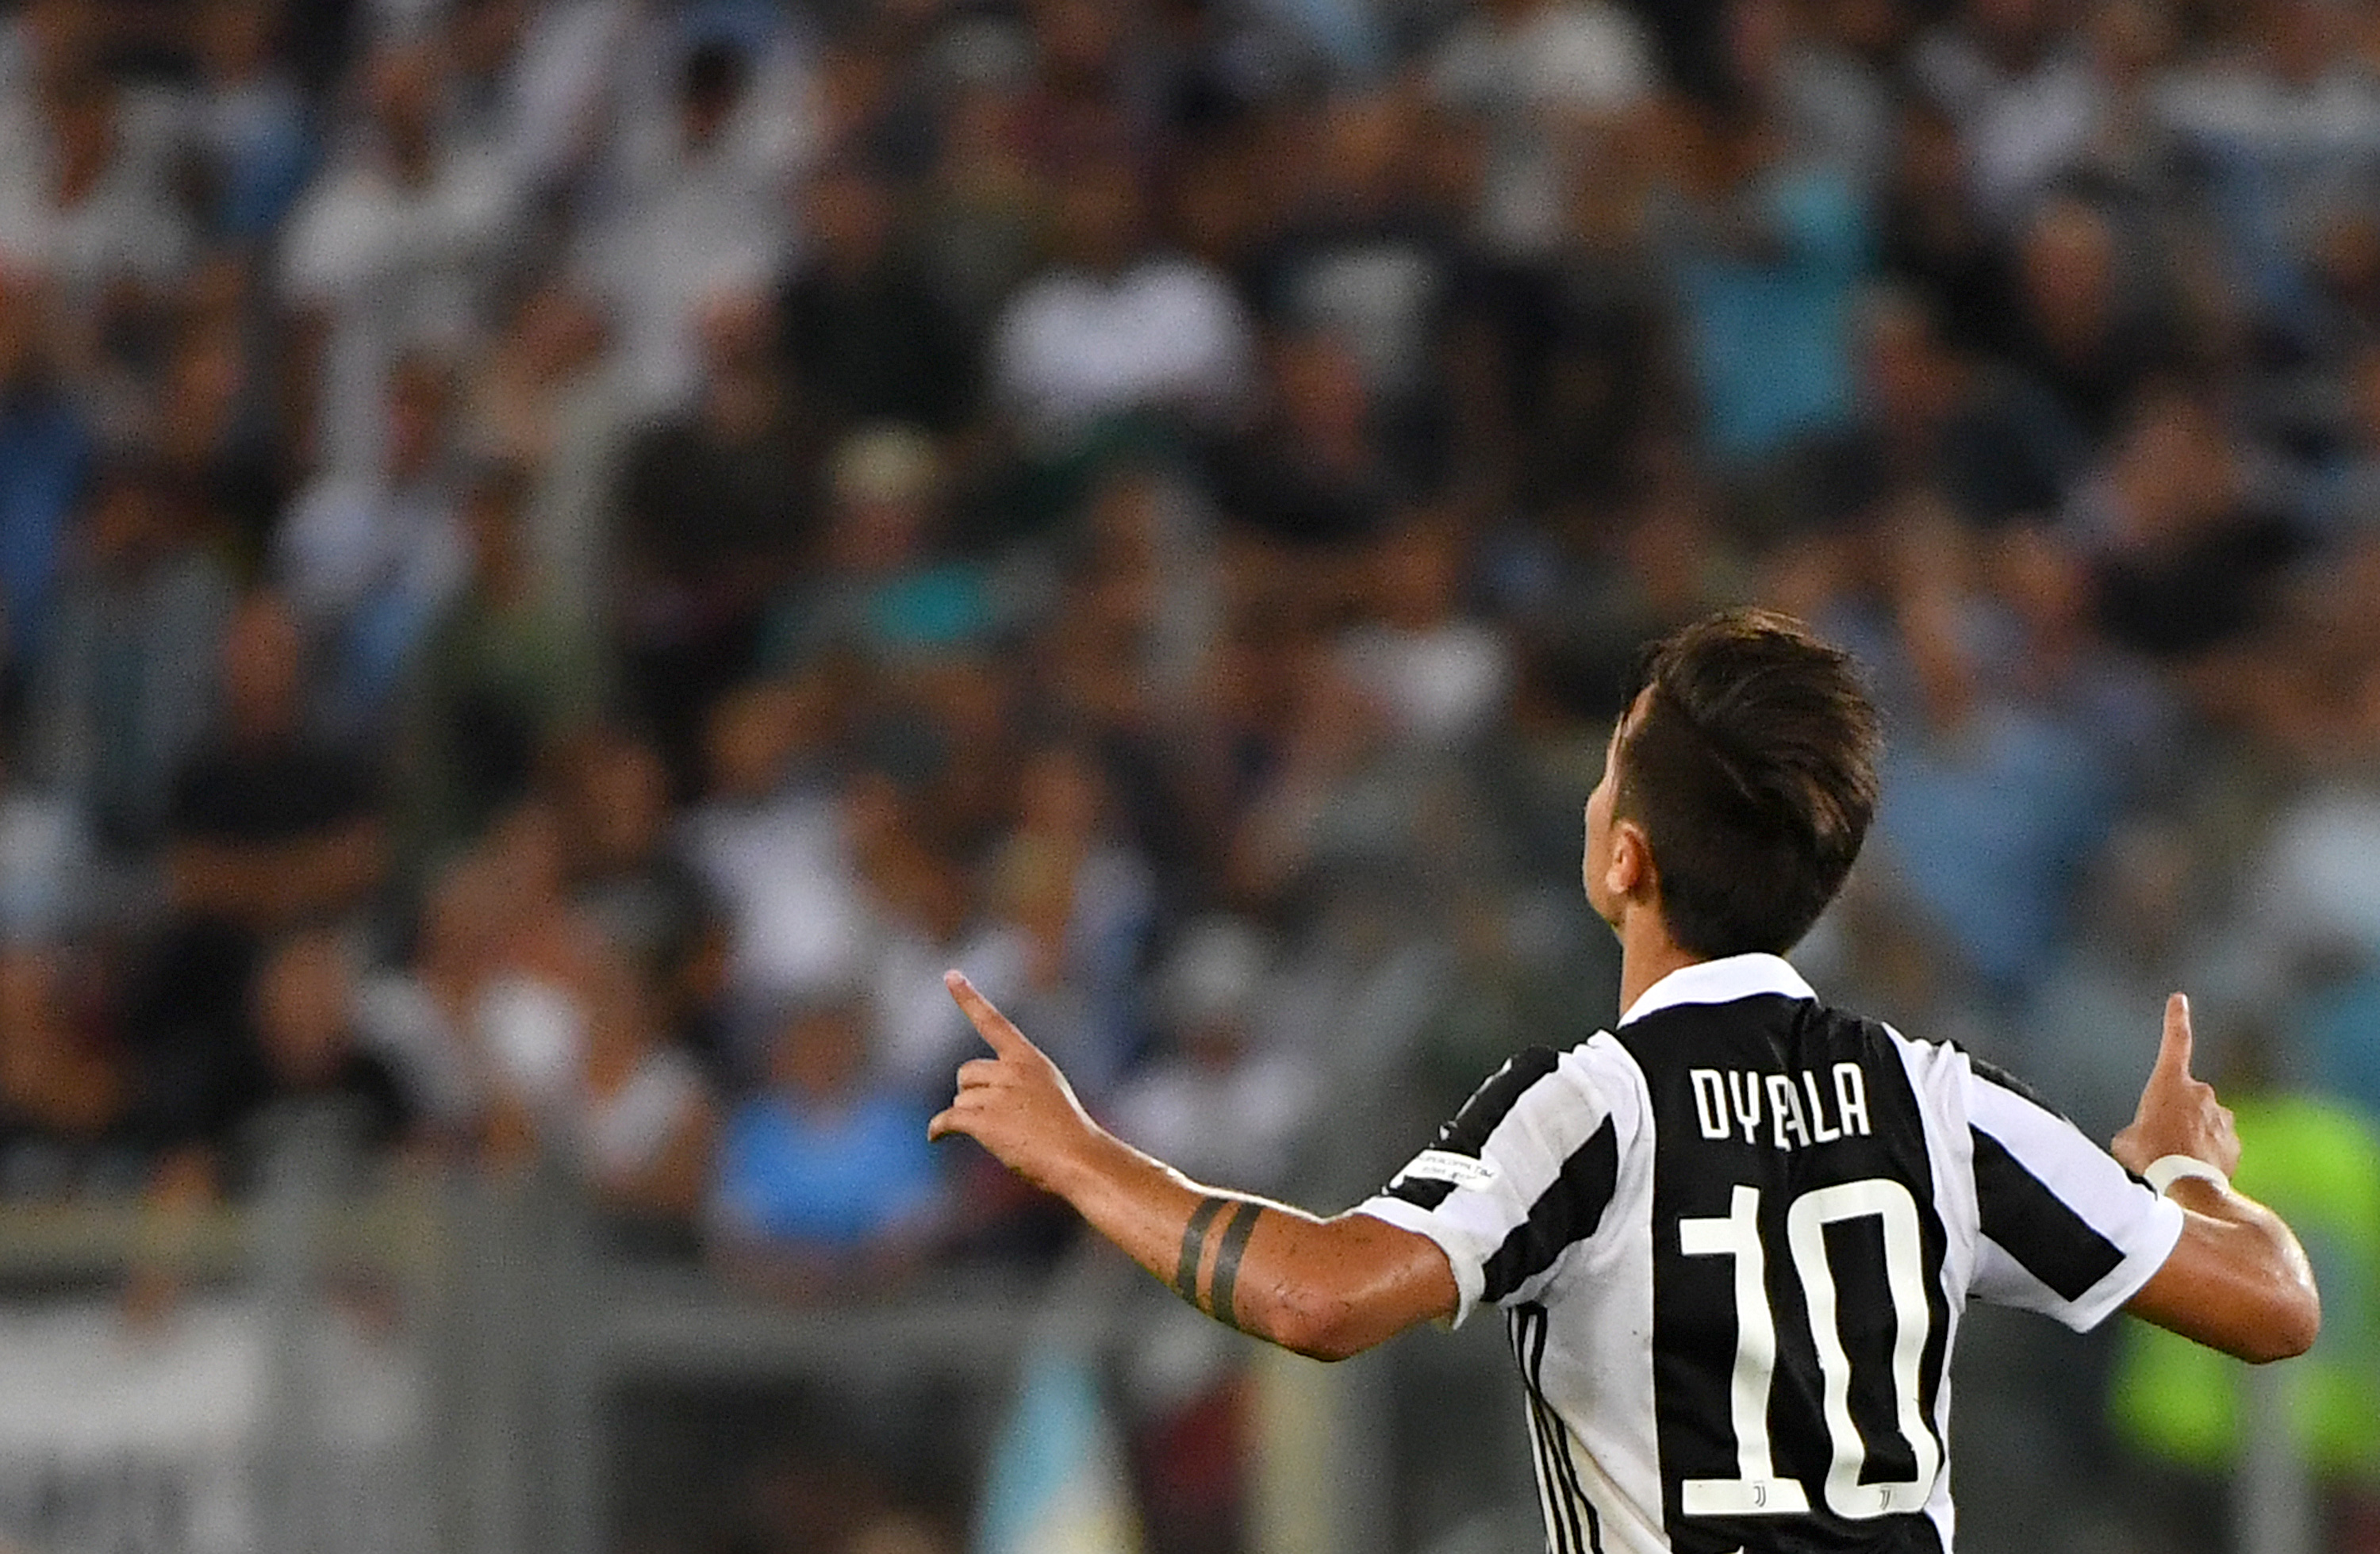 Juventus's forward from Argentina Paulo Dybala celebrates after scoring during the Italian SuperCup TIM football match Juventus vs lazio on August 13, 2017 at the Olympic stadium in Rome. / AFP PHOTO / ALBERTO PIZZOLI (Photo credit should read ALBERTO PIZZOLI/AFP/Getty Images)